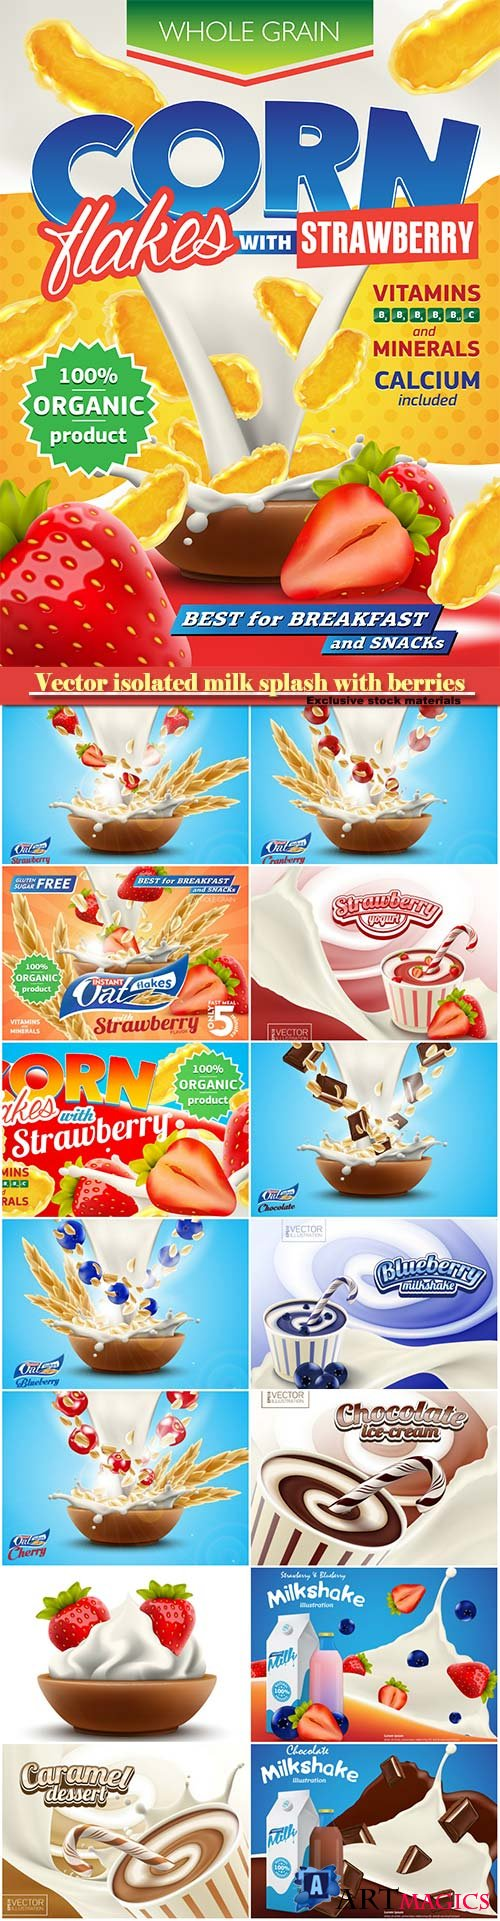 Vector isolated milk splash with berries, sweet strawberry yogurt, milkshake or cream